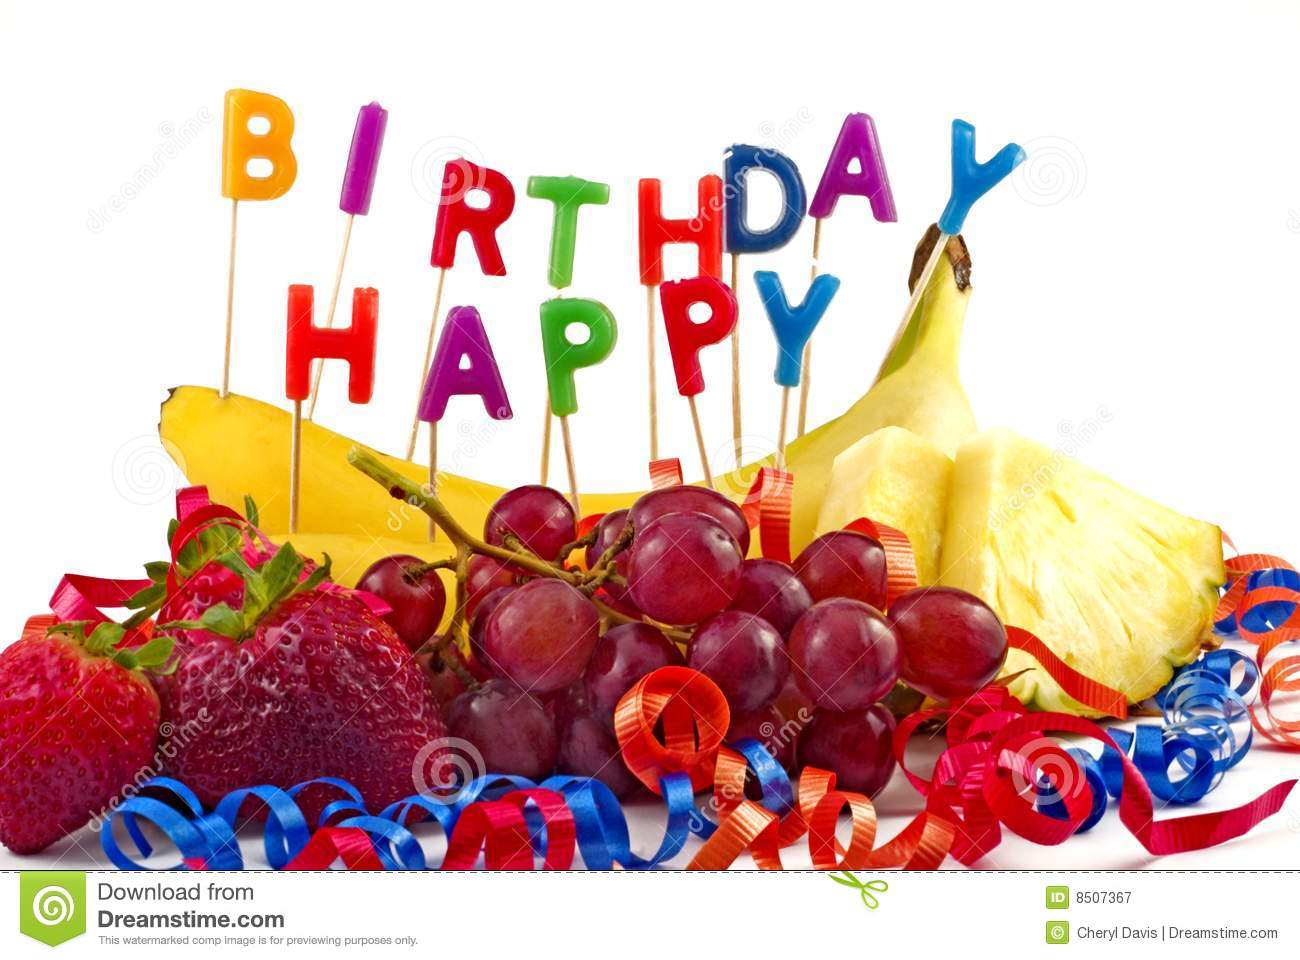 happy birthday healthy ; happy-birthday-fruit-8507367